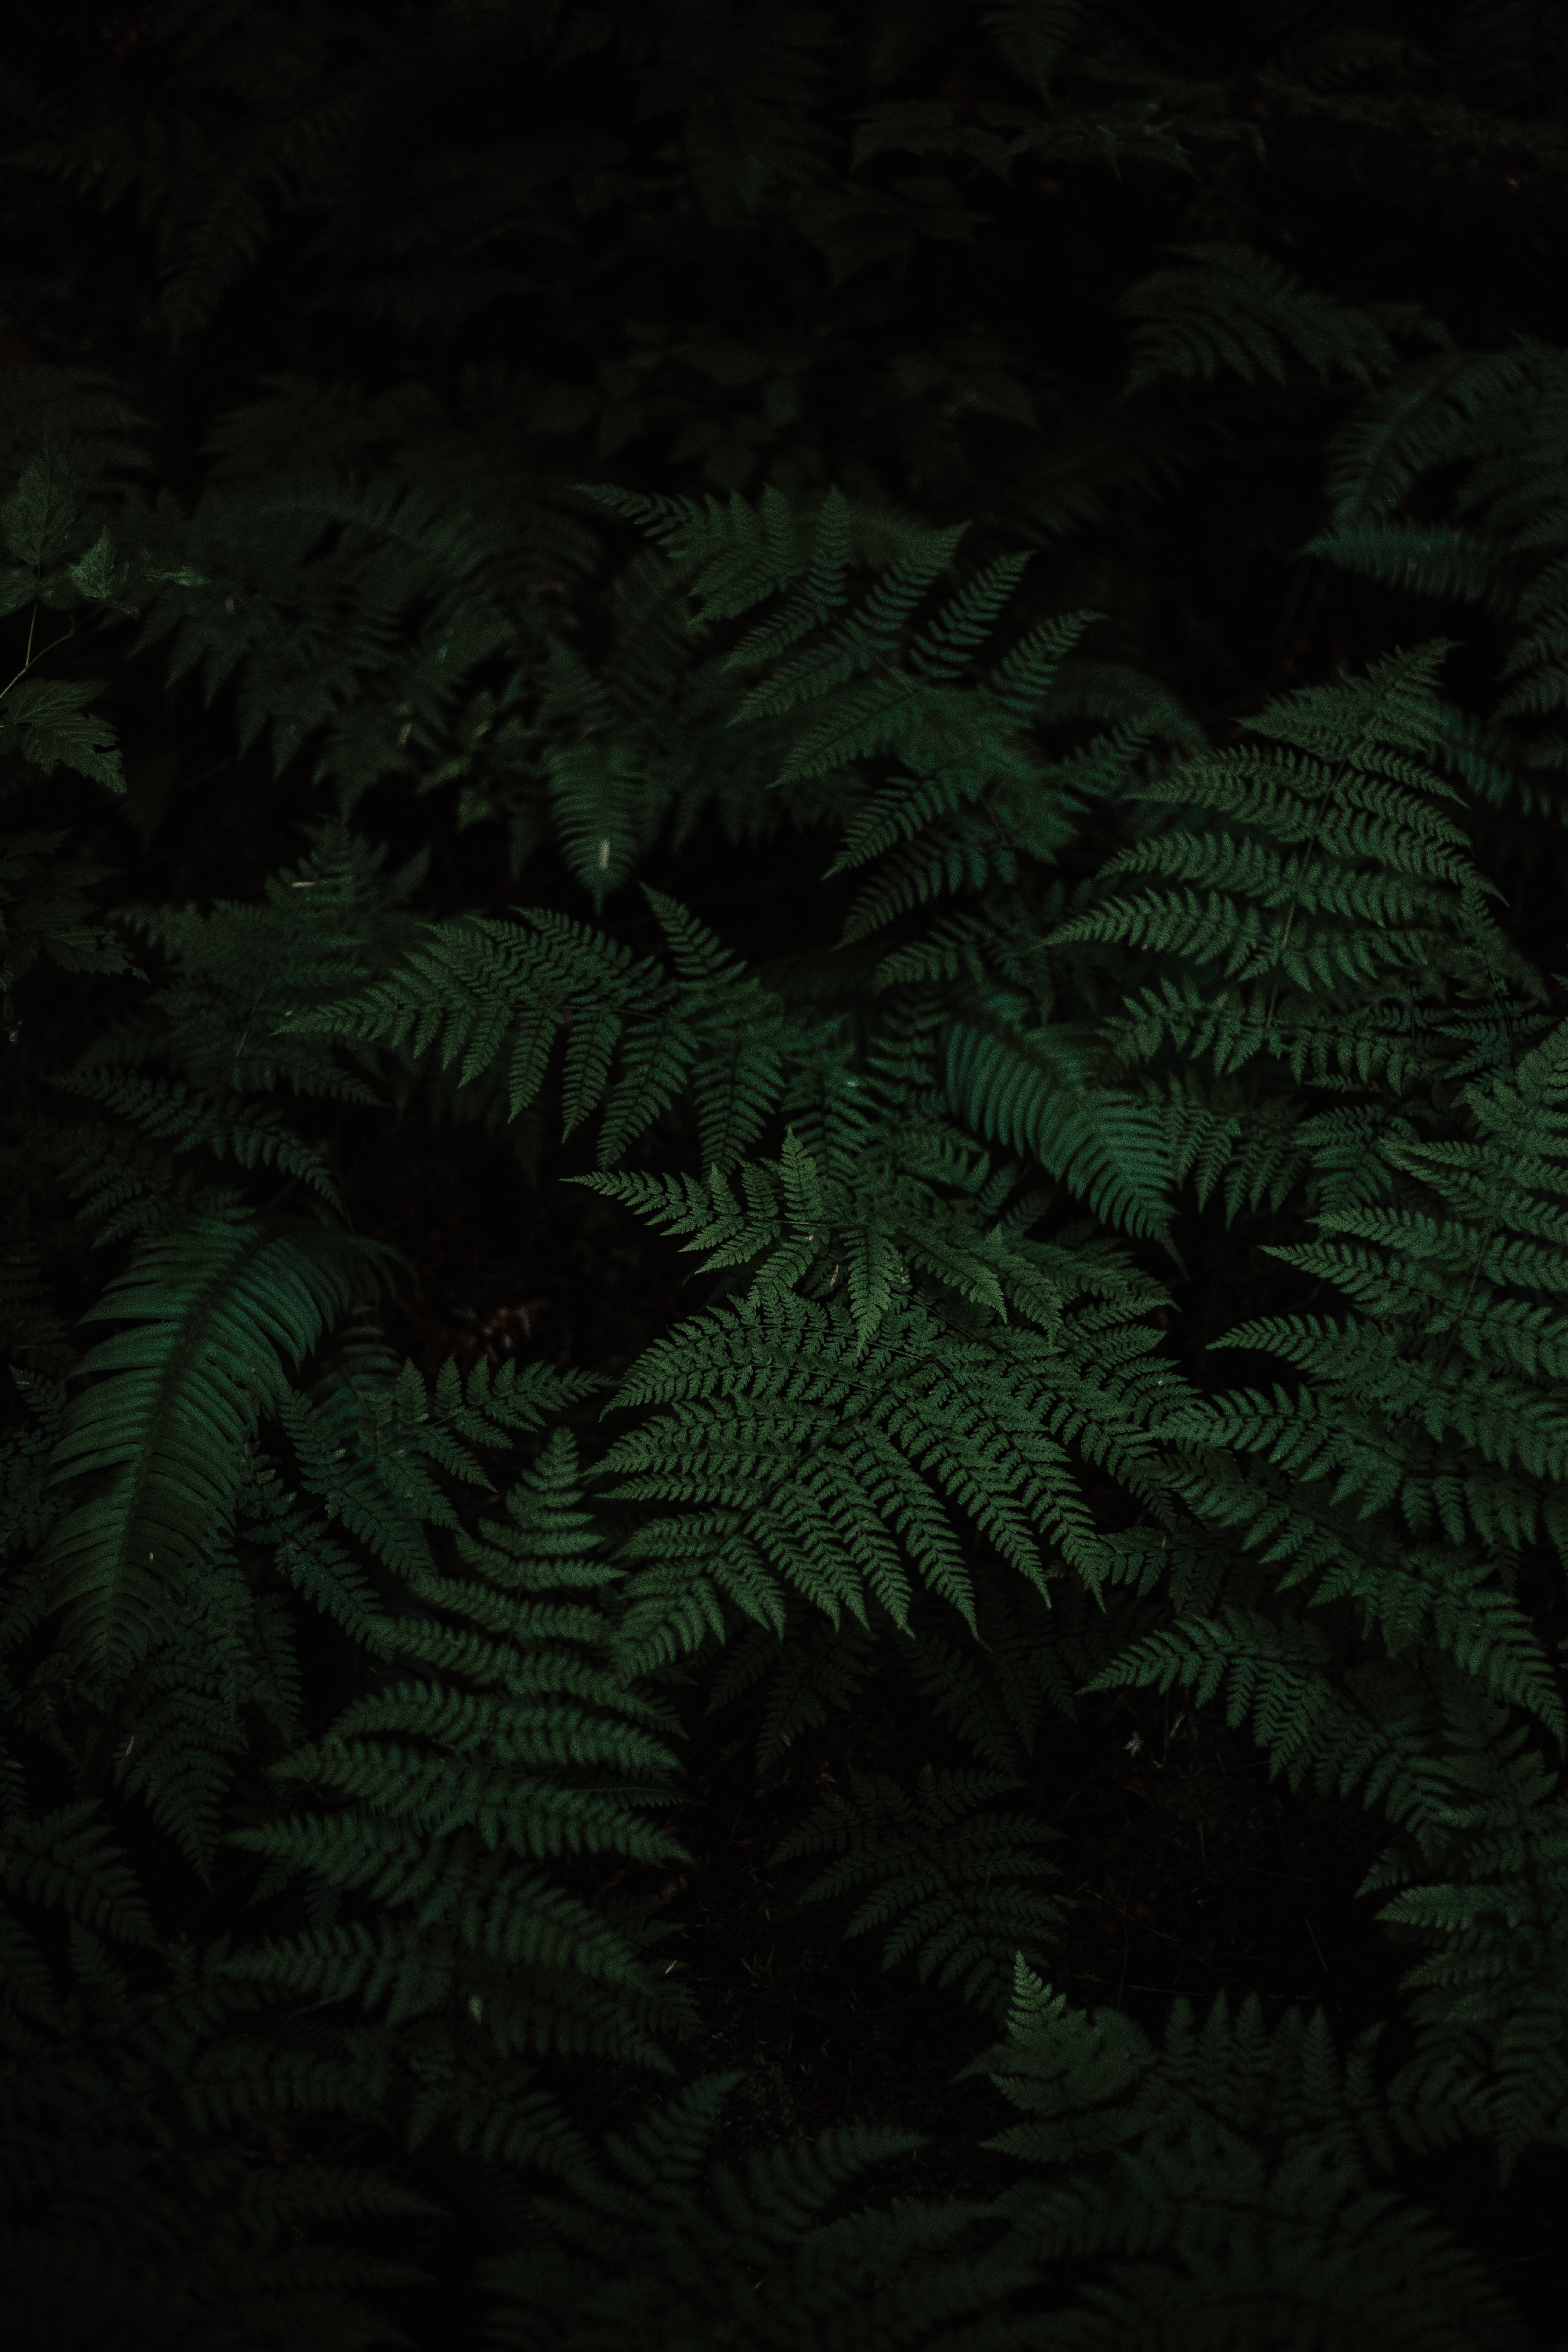 151558 download wallpaper Leaves, Nature, Plant, Fern, Carved screensavers and pictures for free